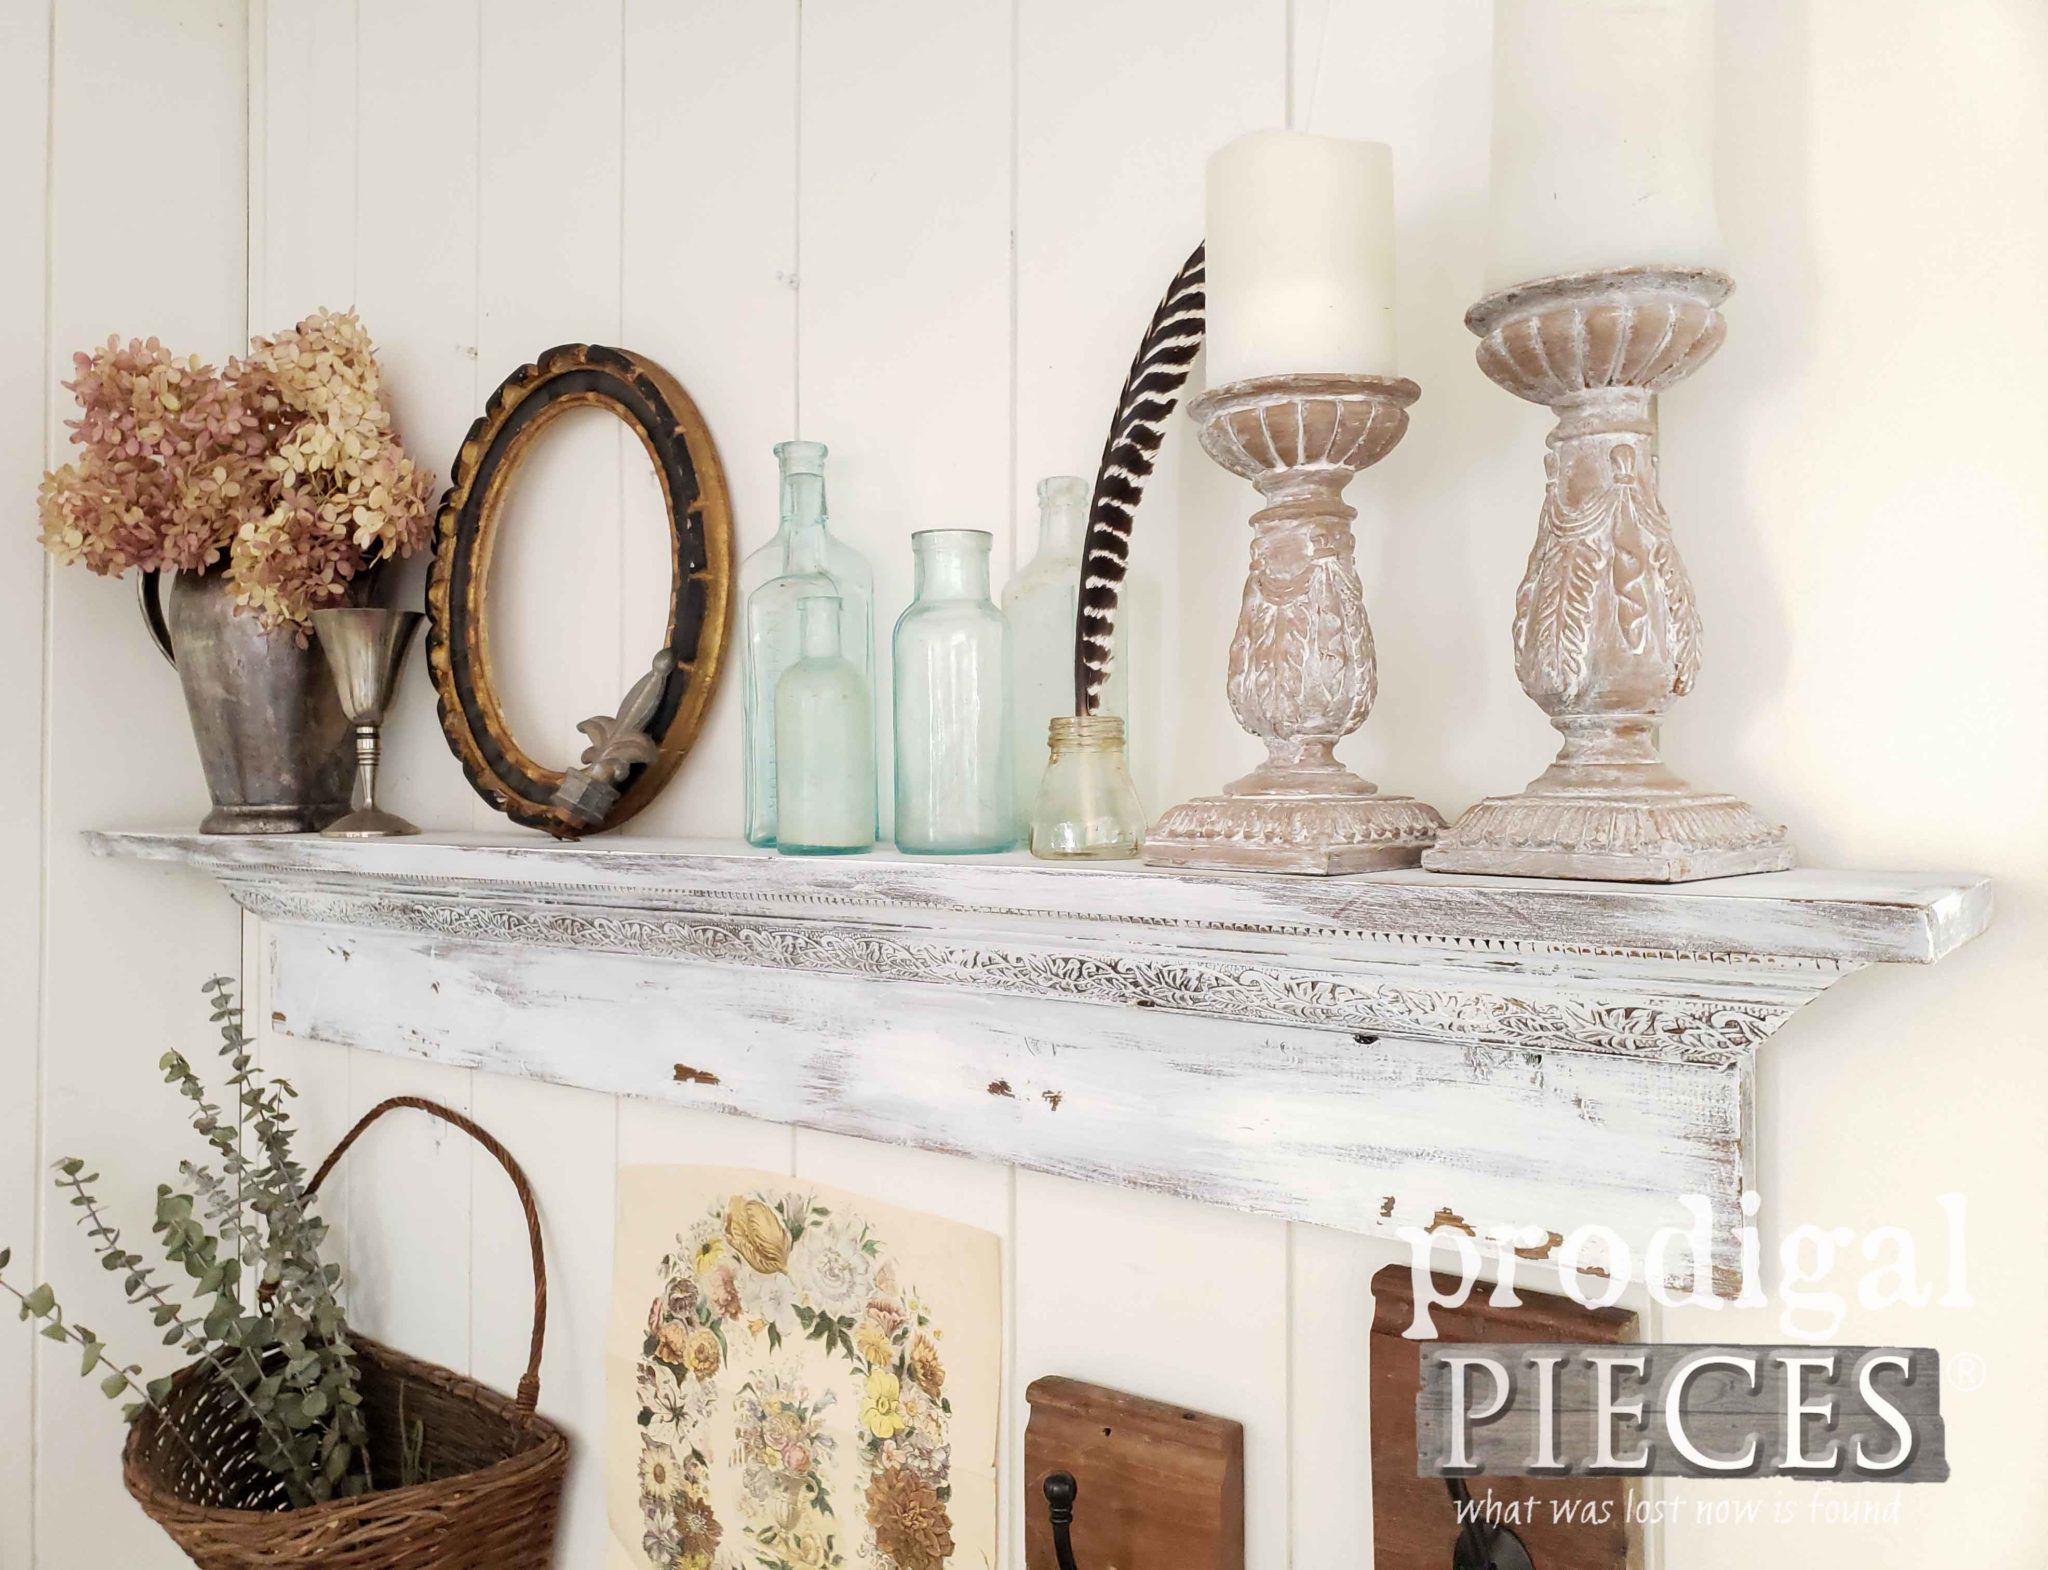 Rustic Chic Mantel Handmade by Larissa of Prodigal Pieces | prodigalpieces.com